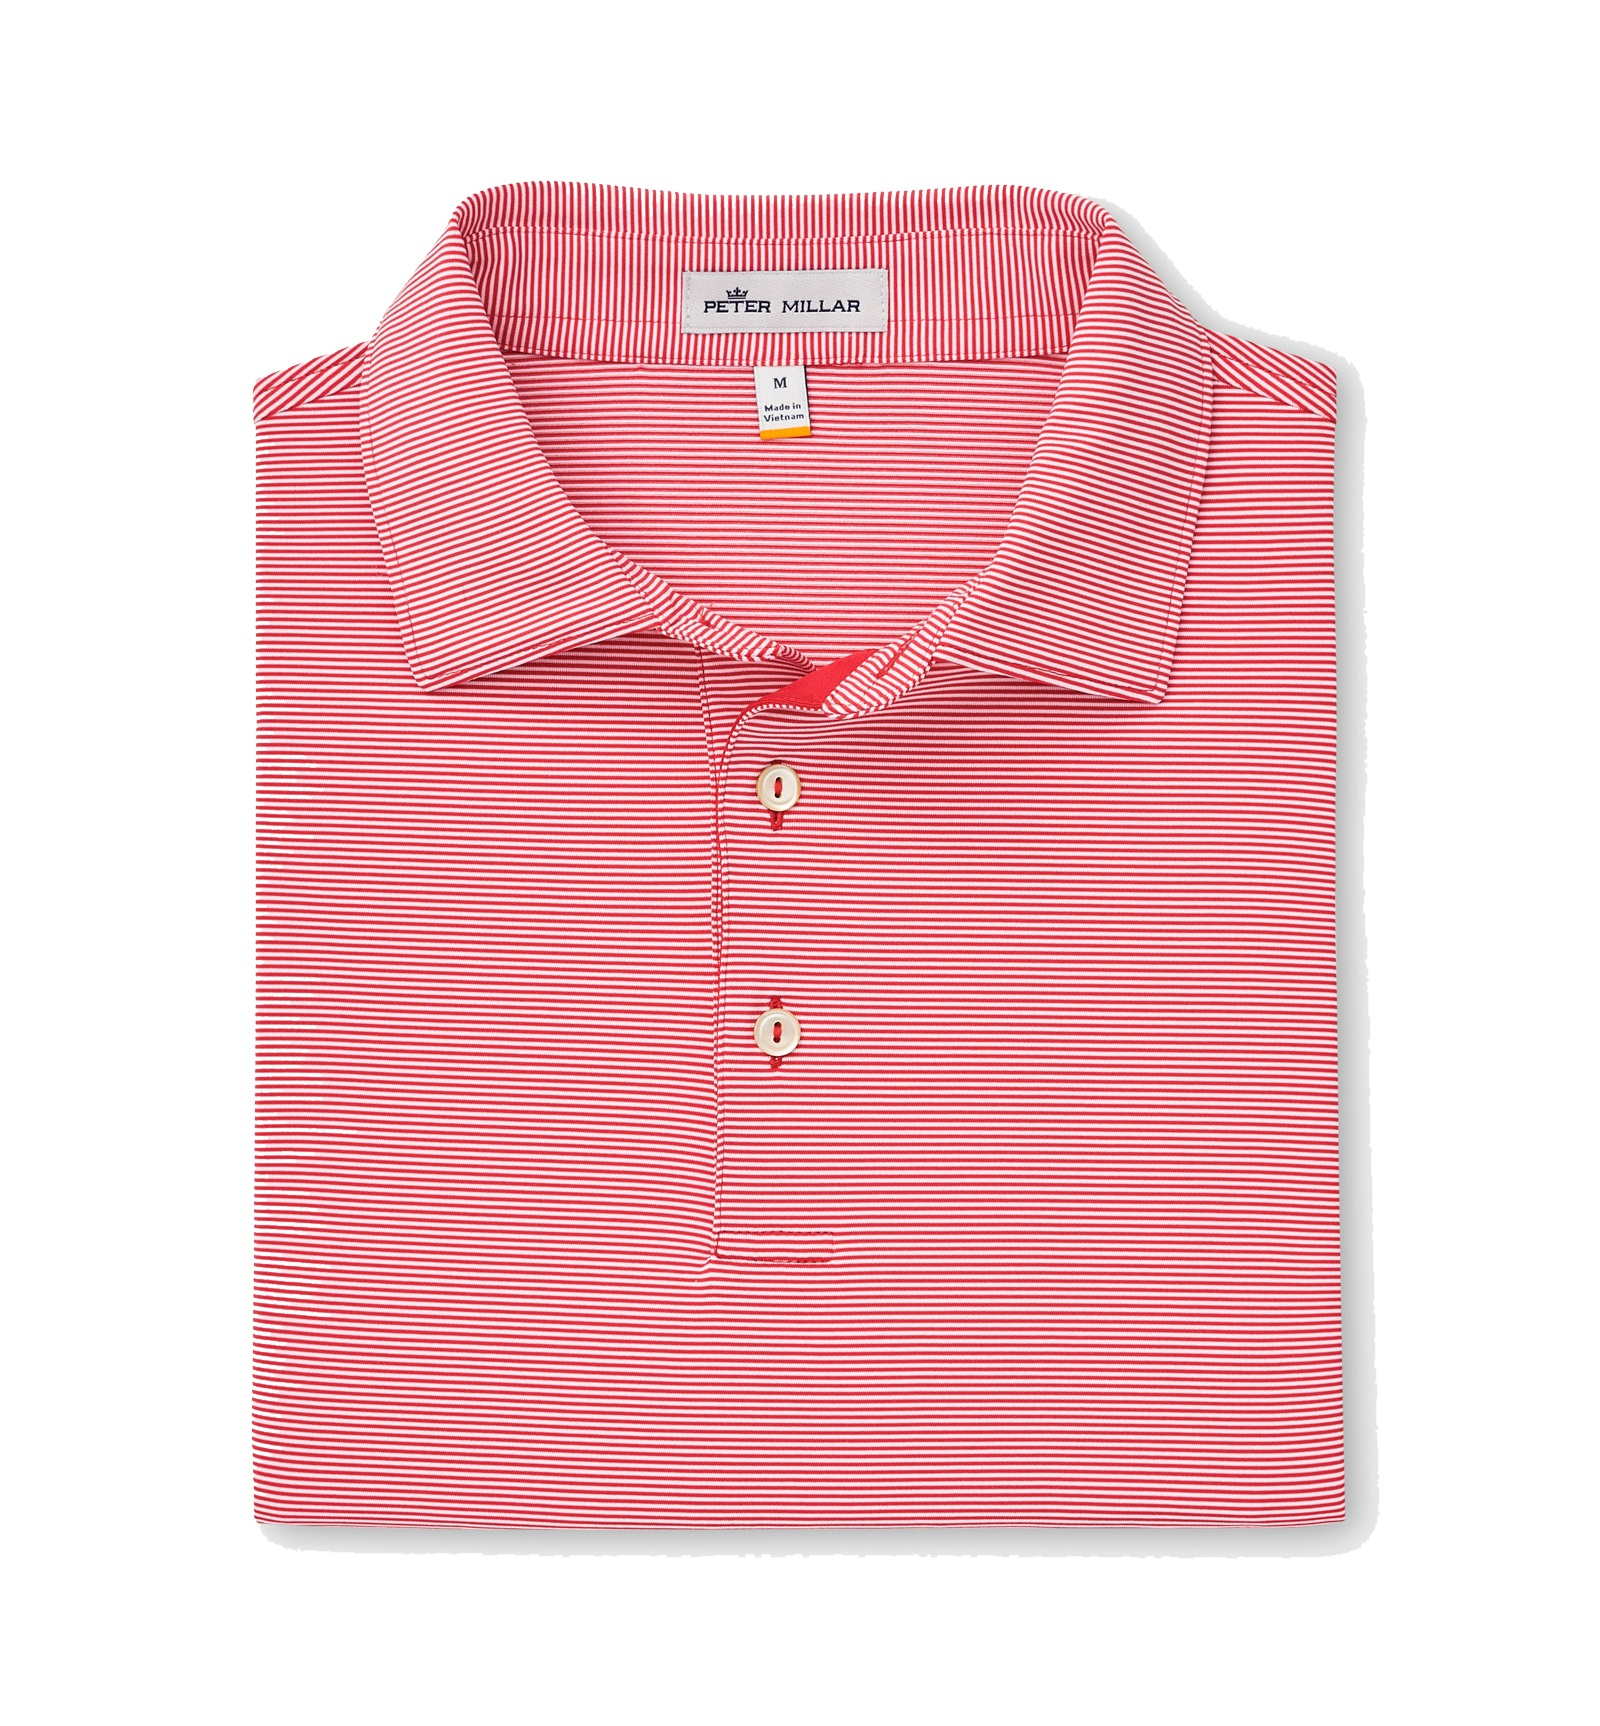 229bfb246c0 Jubilee Stripe Stretch Jersey Polo - Peter Millar South Africa